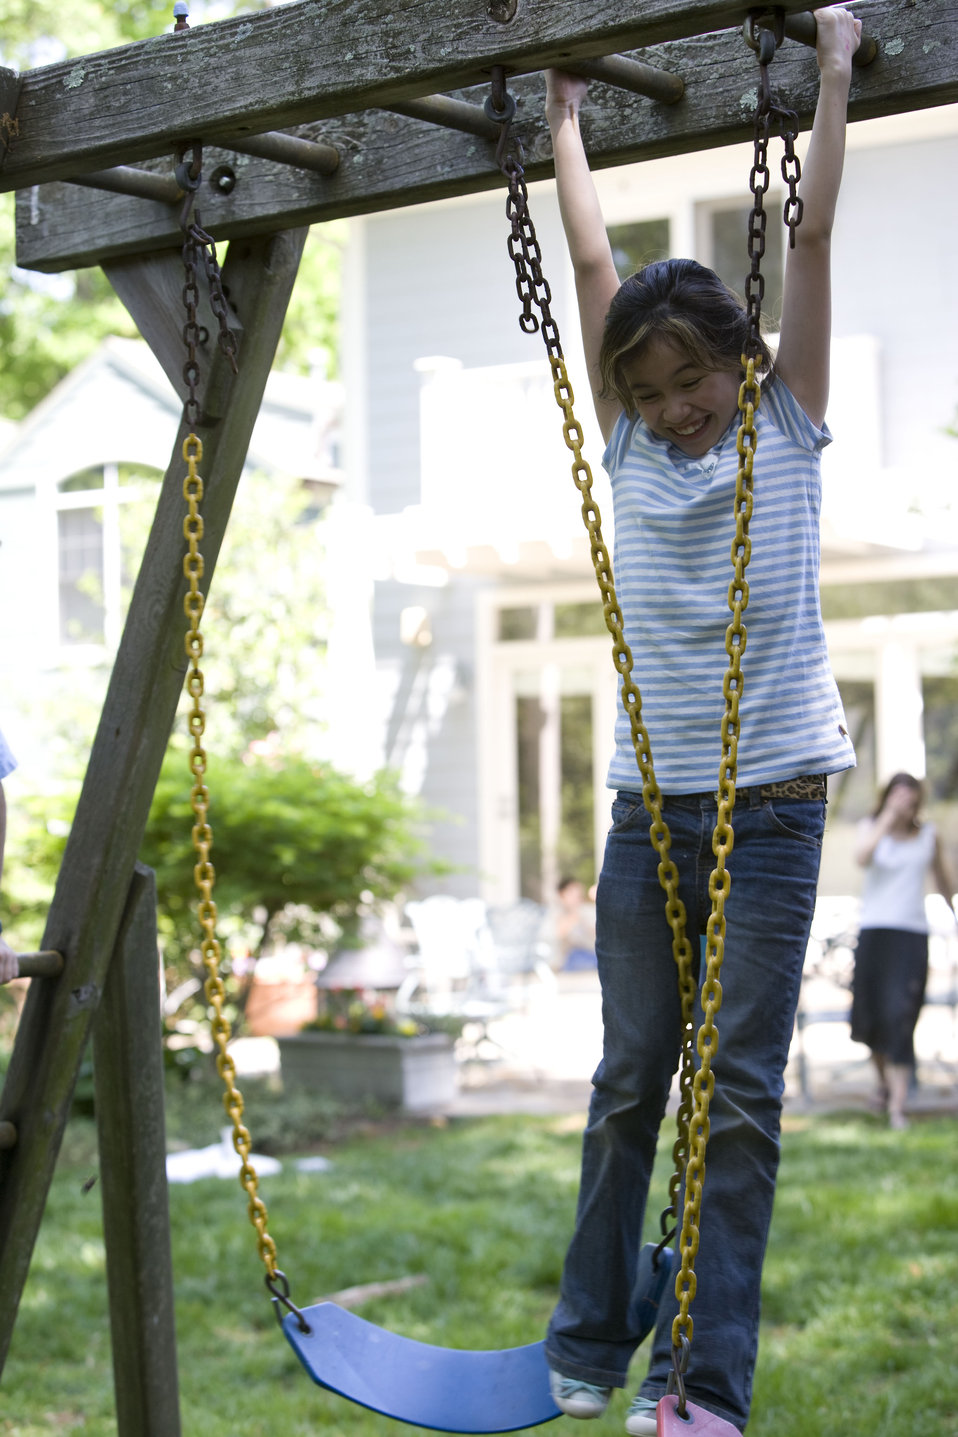 This young girl was playing outside on her backyard swing set, while in the background her mother could be seen calling out to her, probably